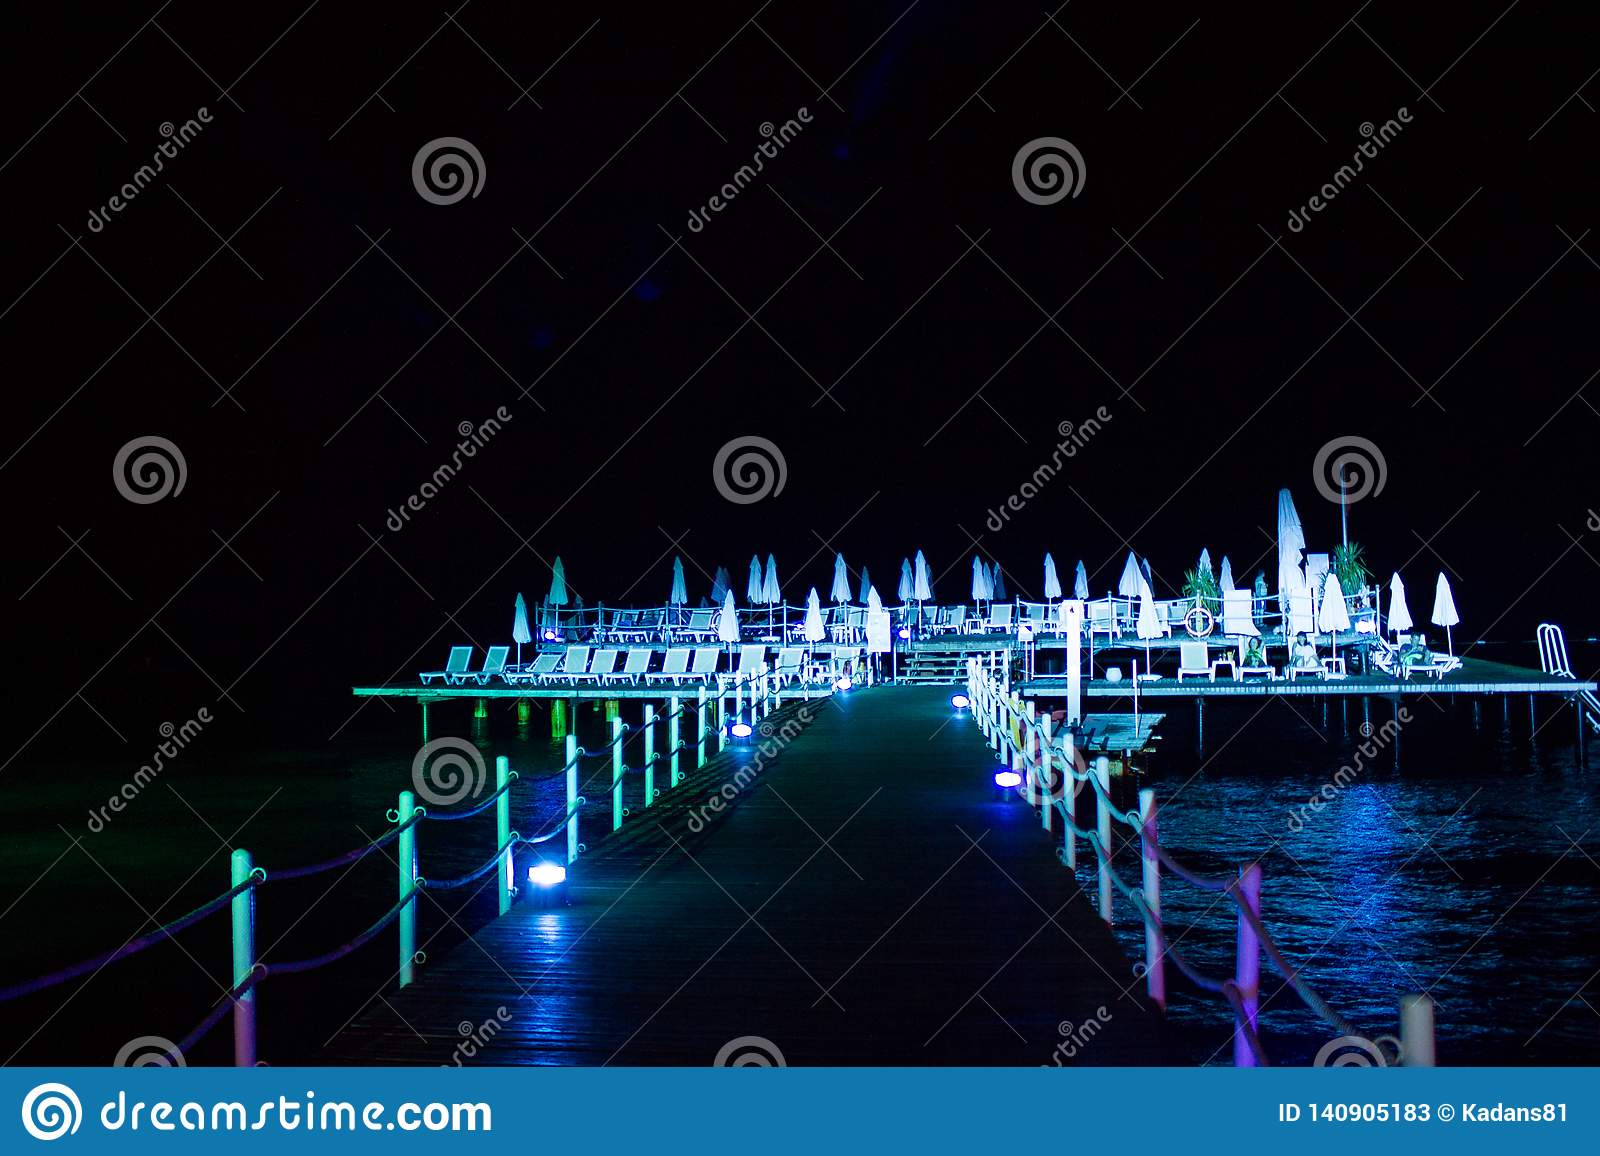 Night pier with sun loungers, in bright lights, on the sea